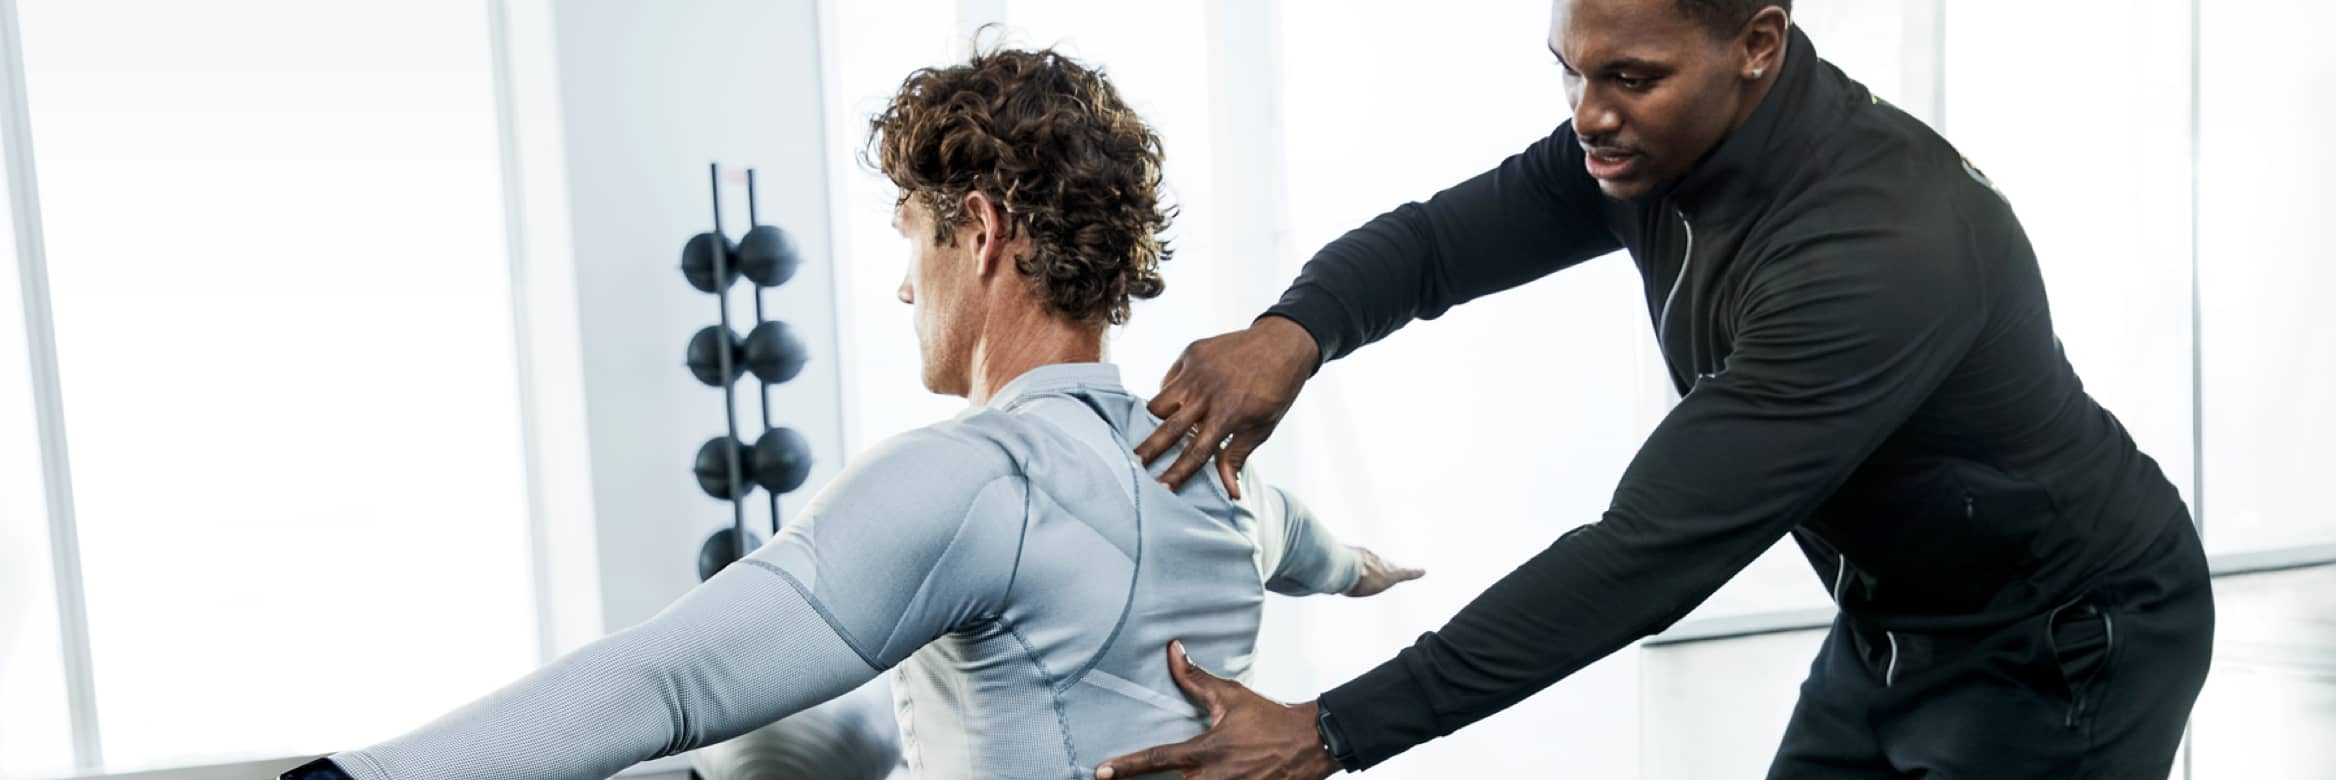 A trainer applies pressure to his client's upper back during a session